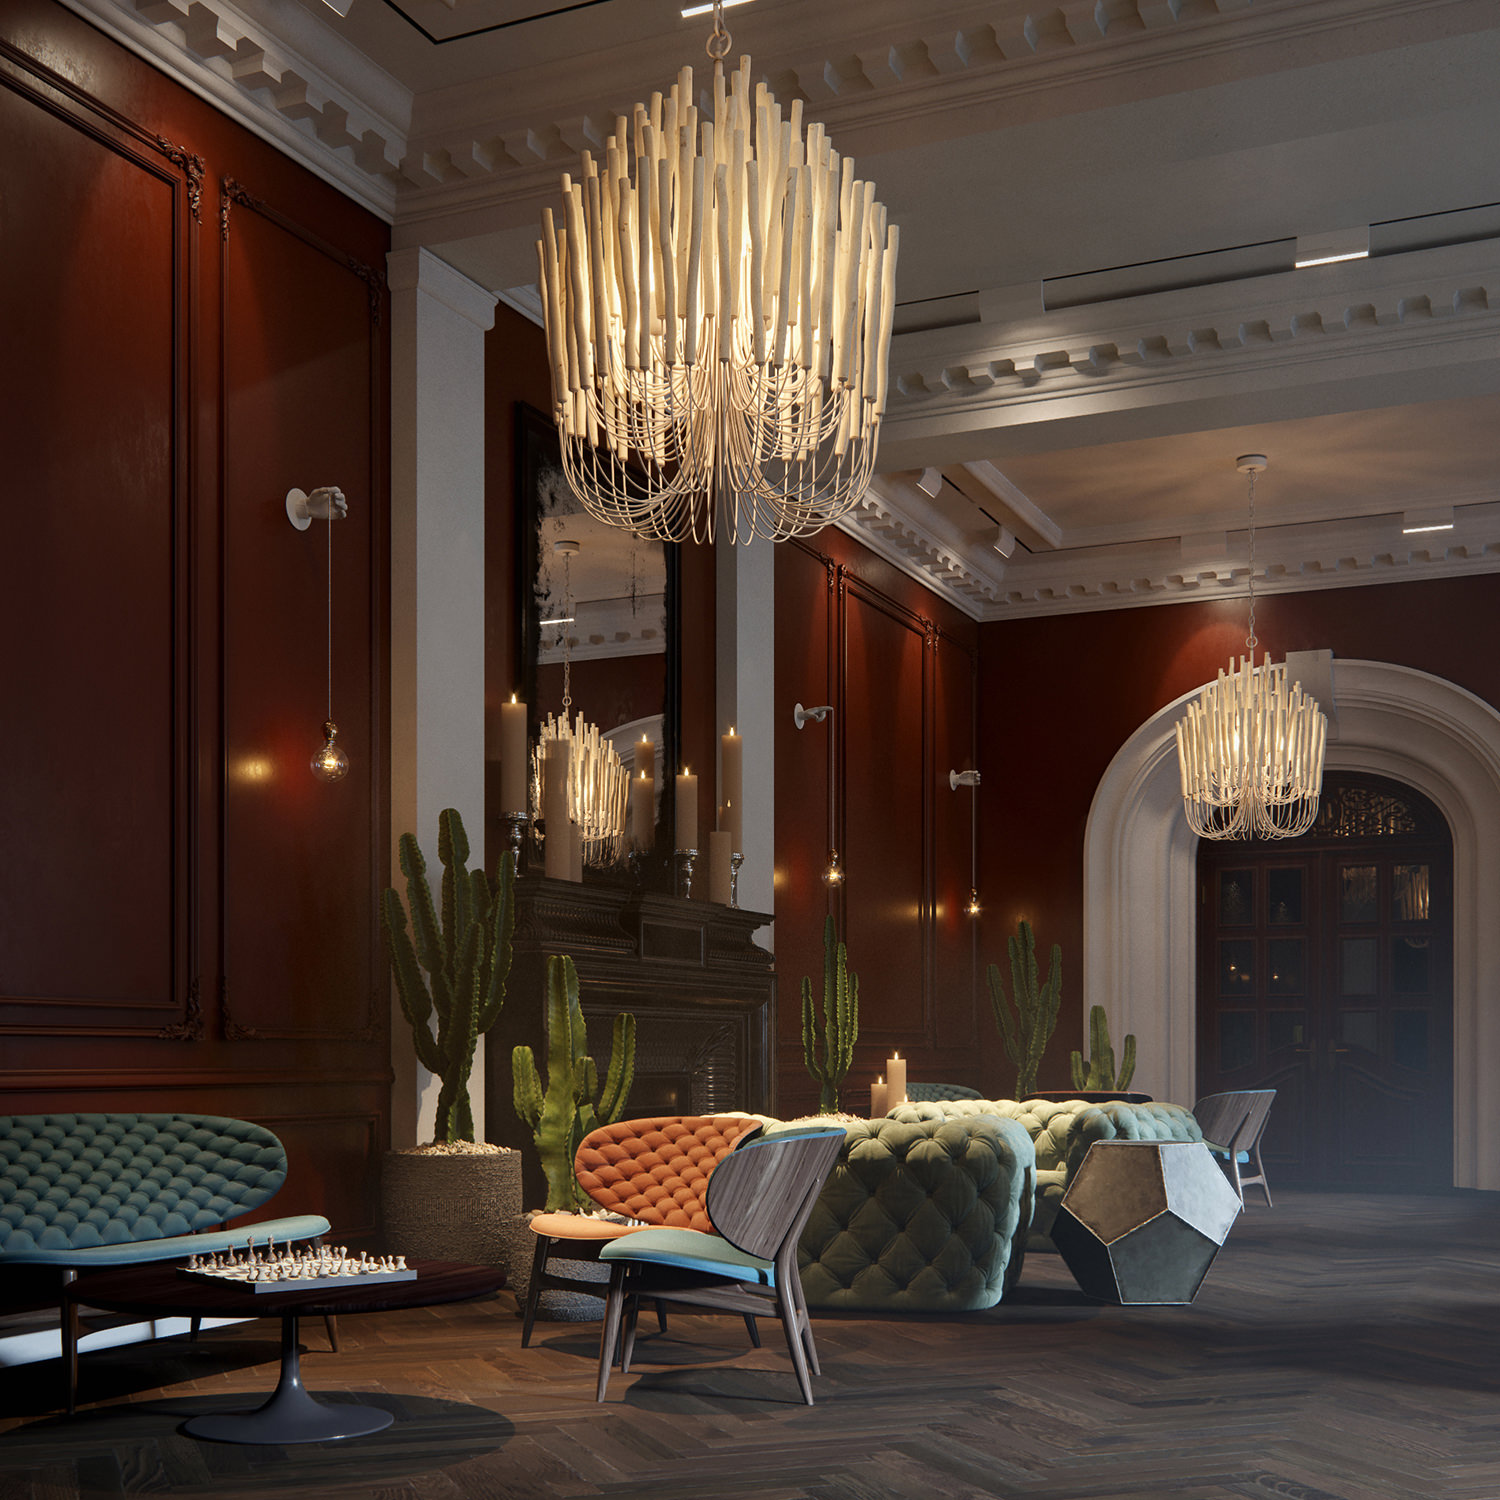 Photorealistic 3D render of a tailor-made hotel lounge interior with patinated wood moldings, leather and suede furniture, vintage chandeliers